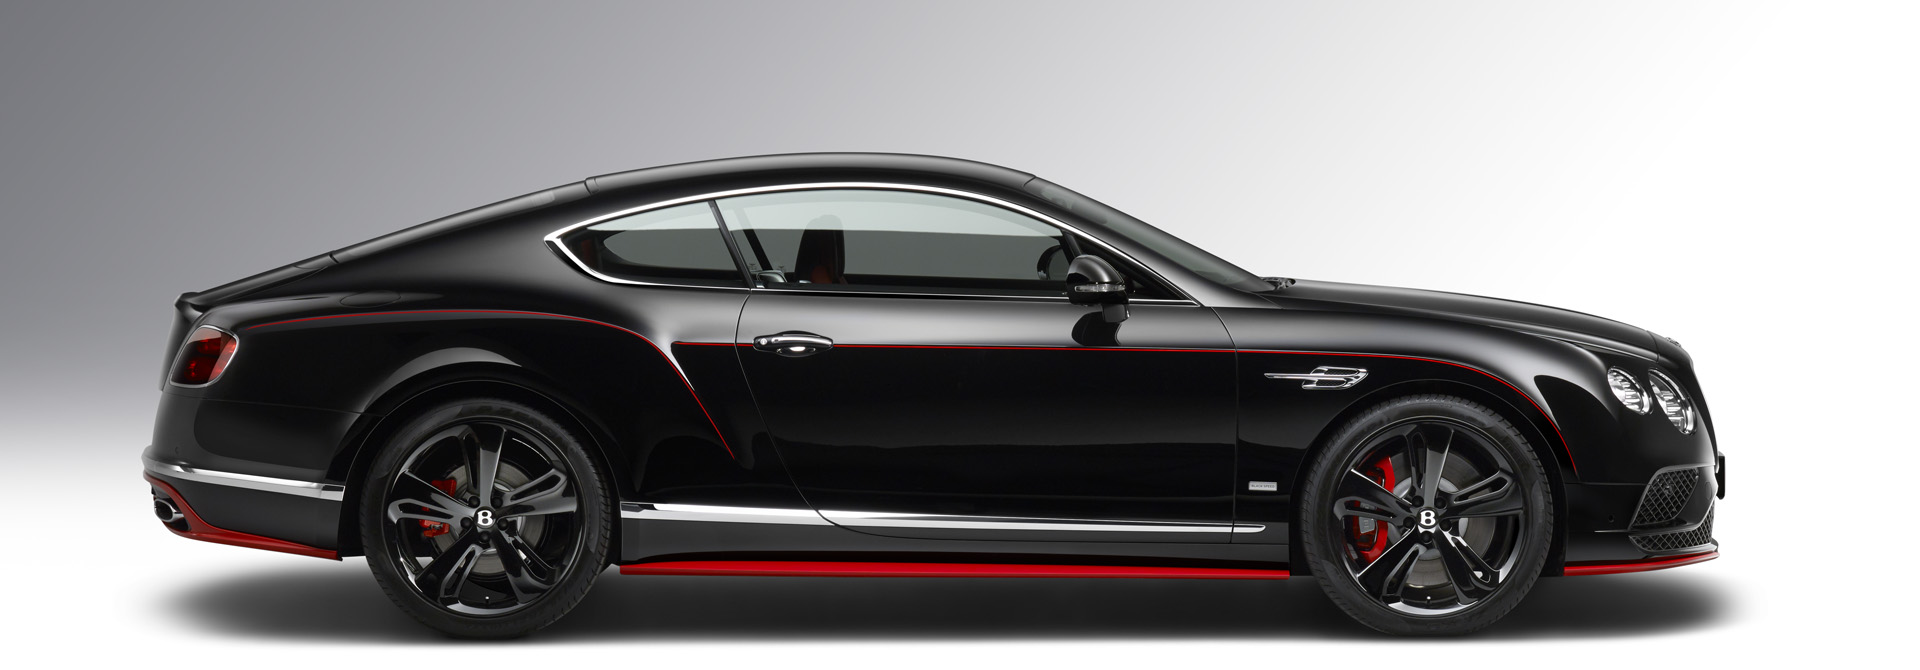 Bentley Motors Website World Of Mulliner Limited Editions Edition Black Sd